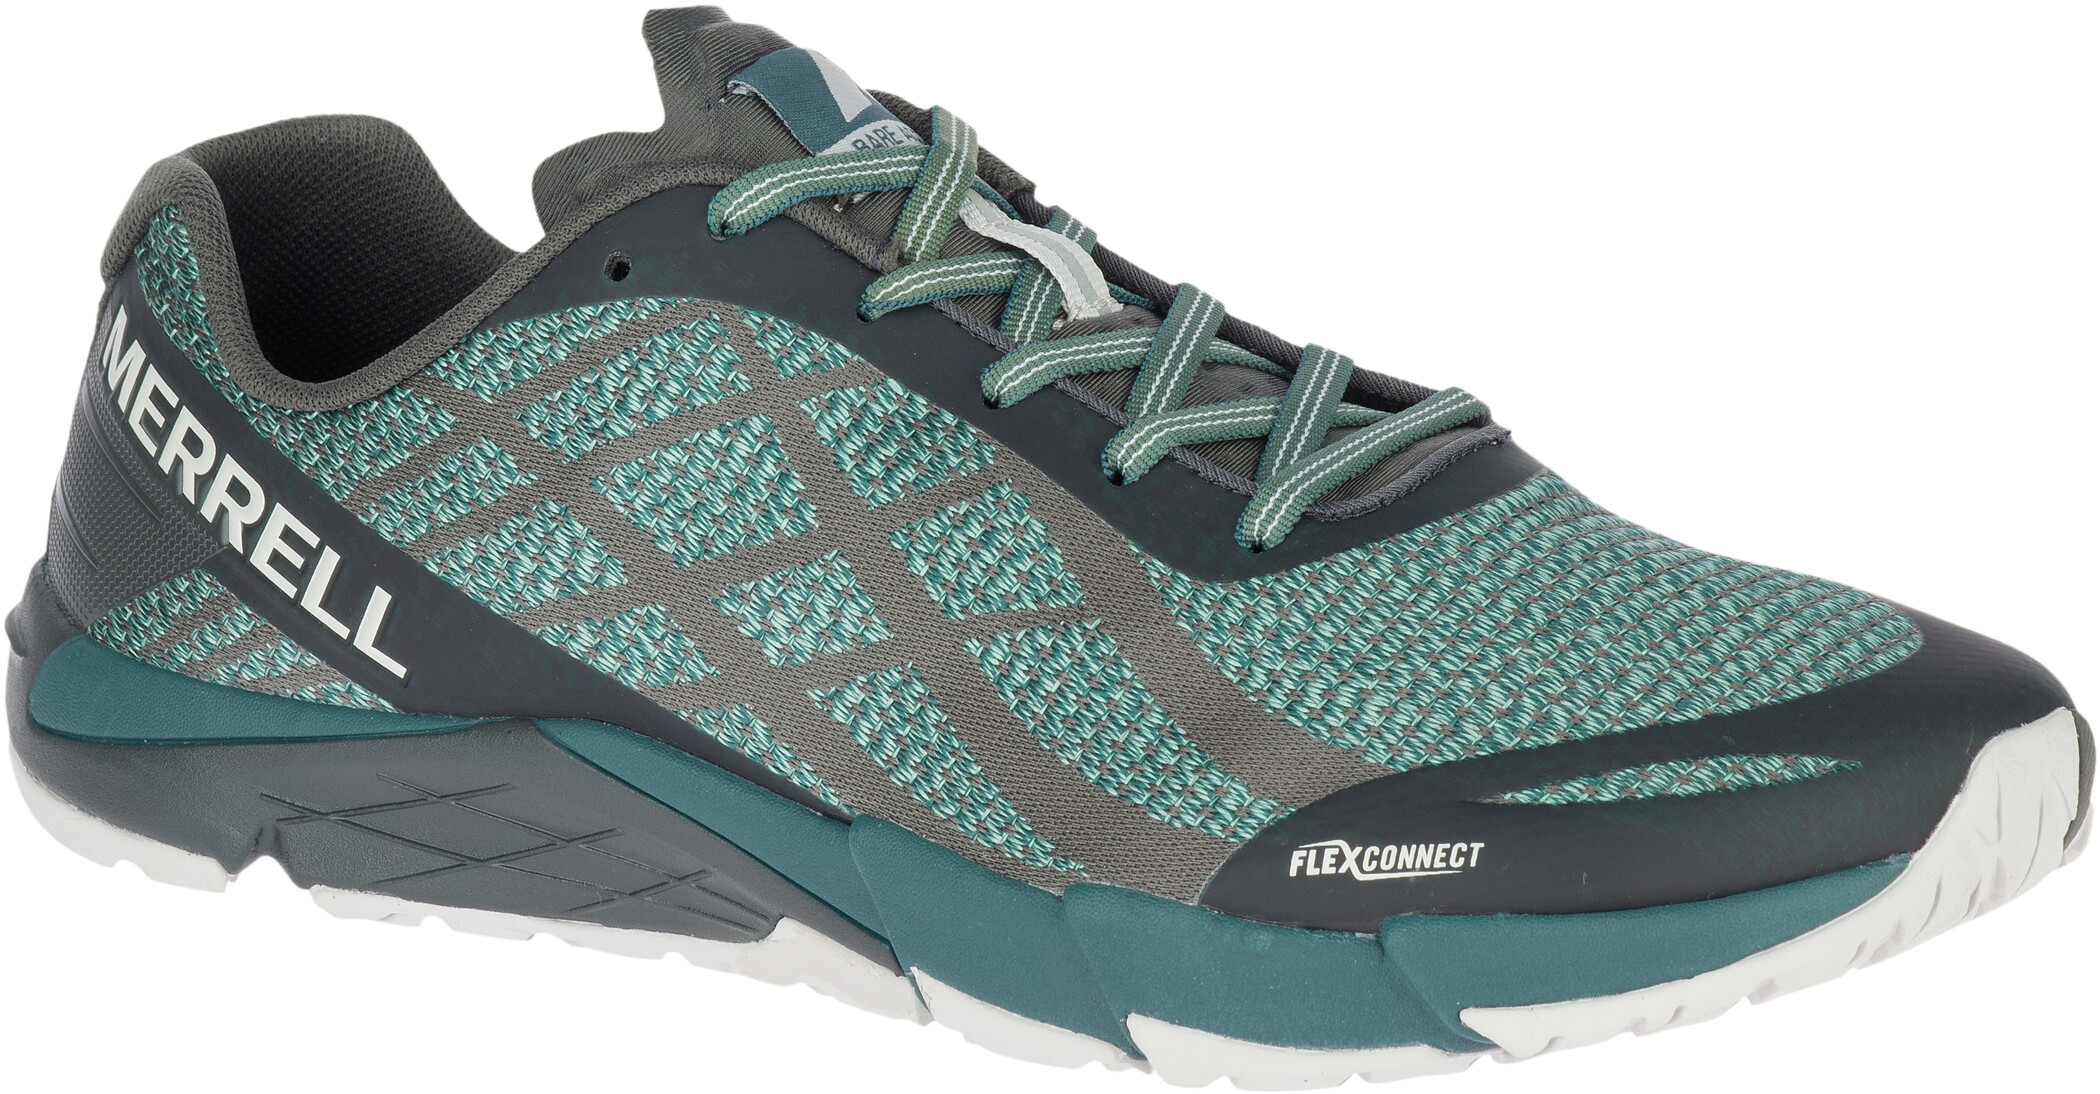 Merrell Bare Access Flex Shield Sko Herrer, hypernature | Shoes and overlays